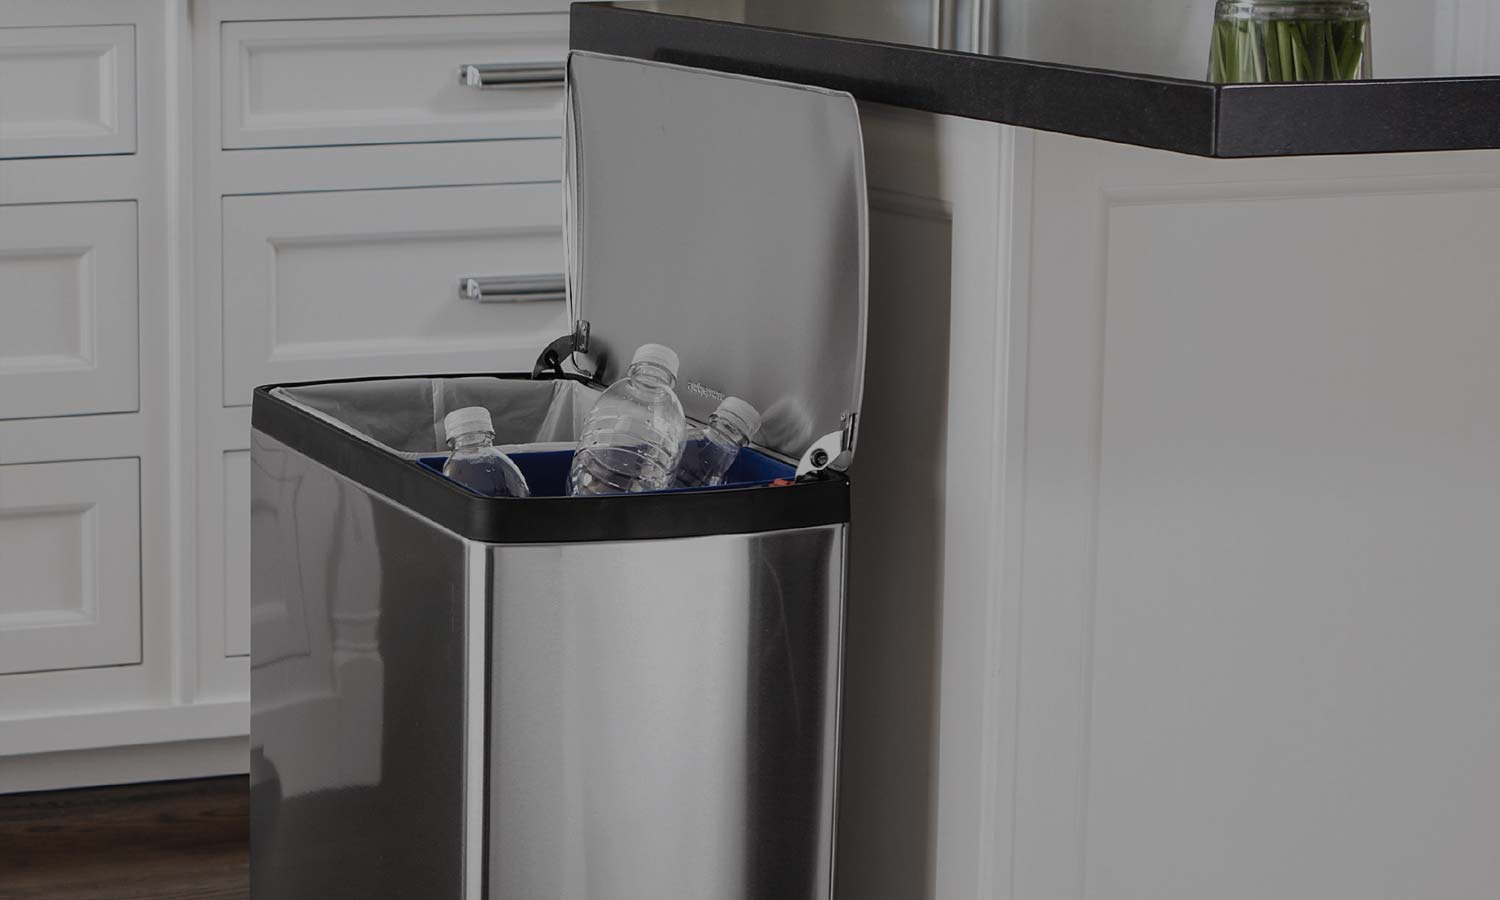 kitchen trash can sizes how to decorate counter space dual cans - two compartment recycling bins